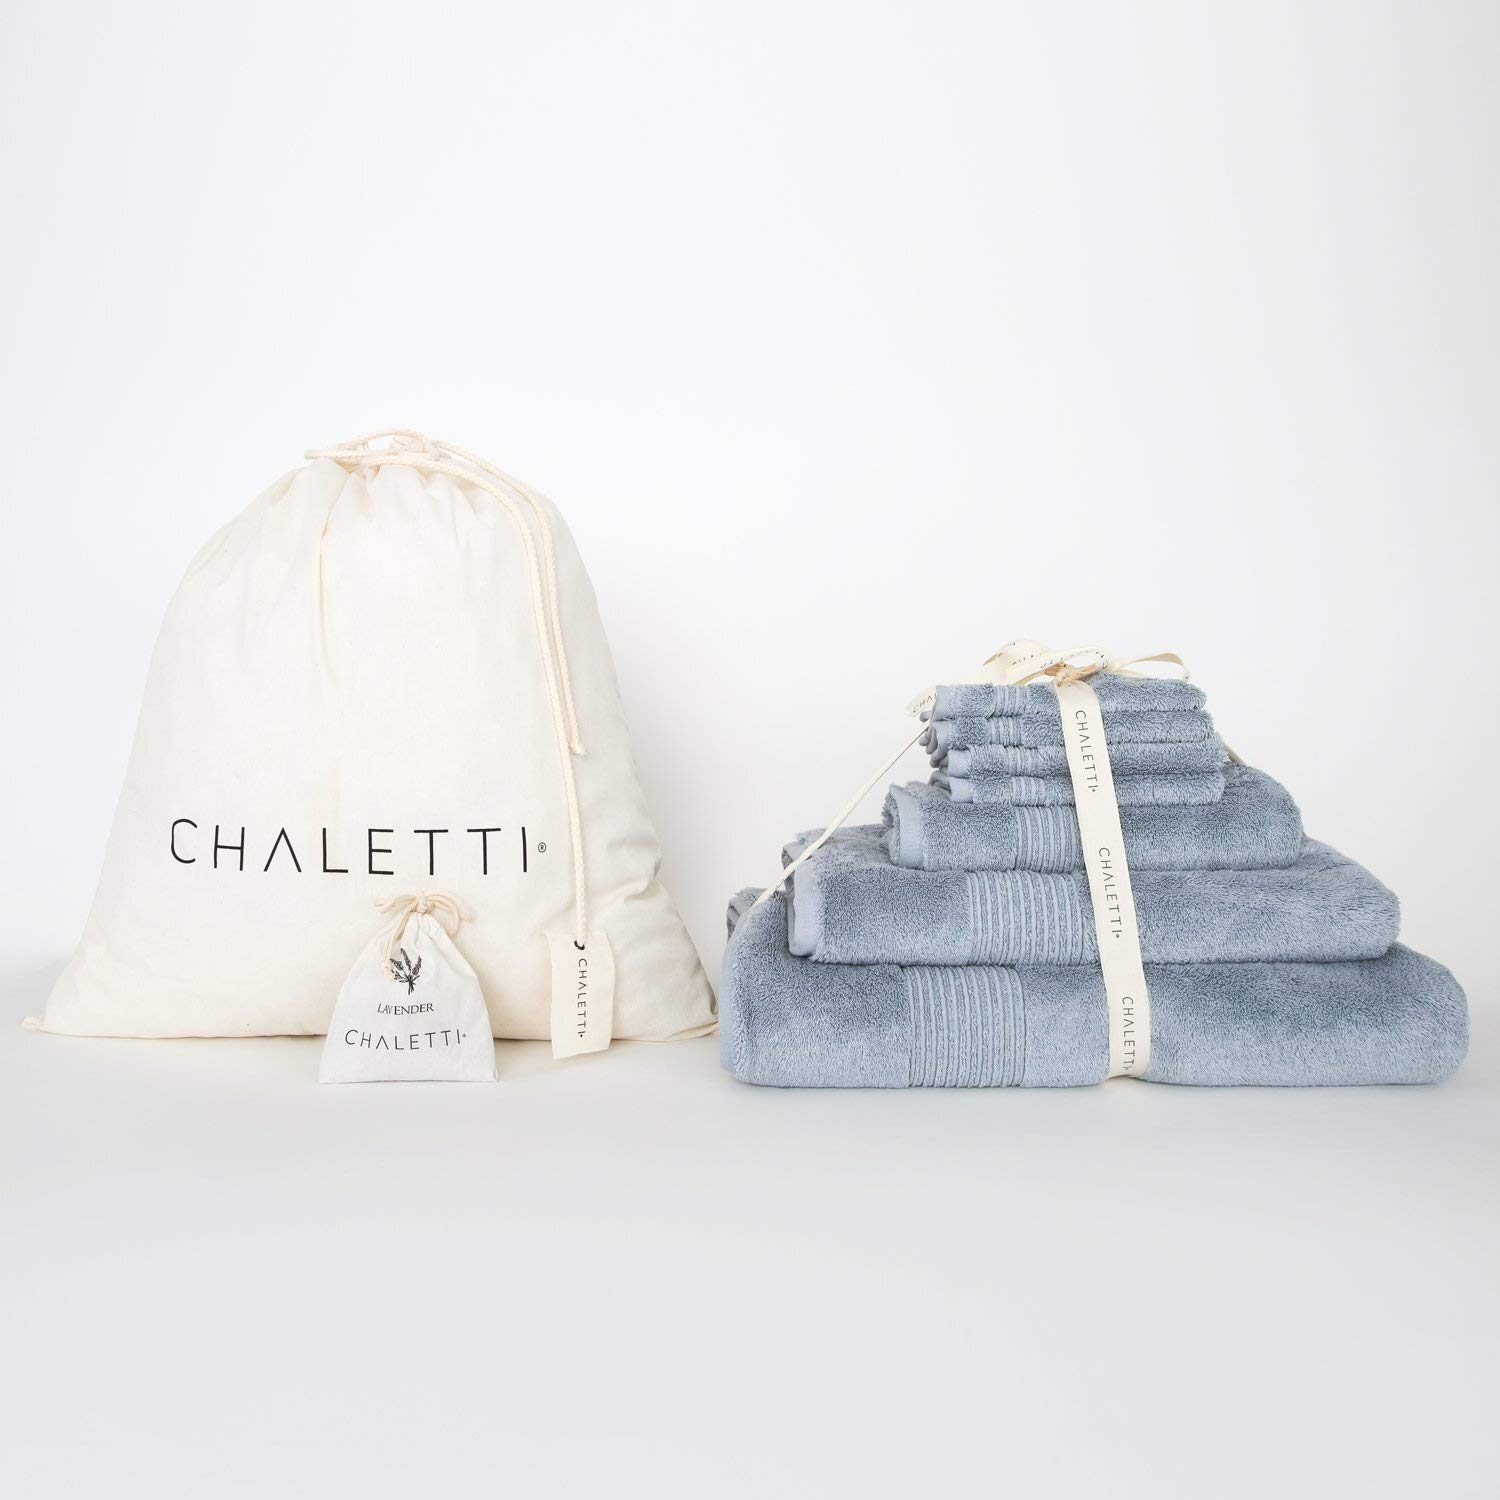 Chaletti Aspen Turkish Towel 7 Piece Set (Ice Blue)